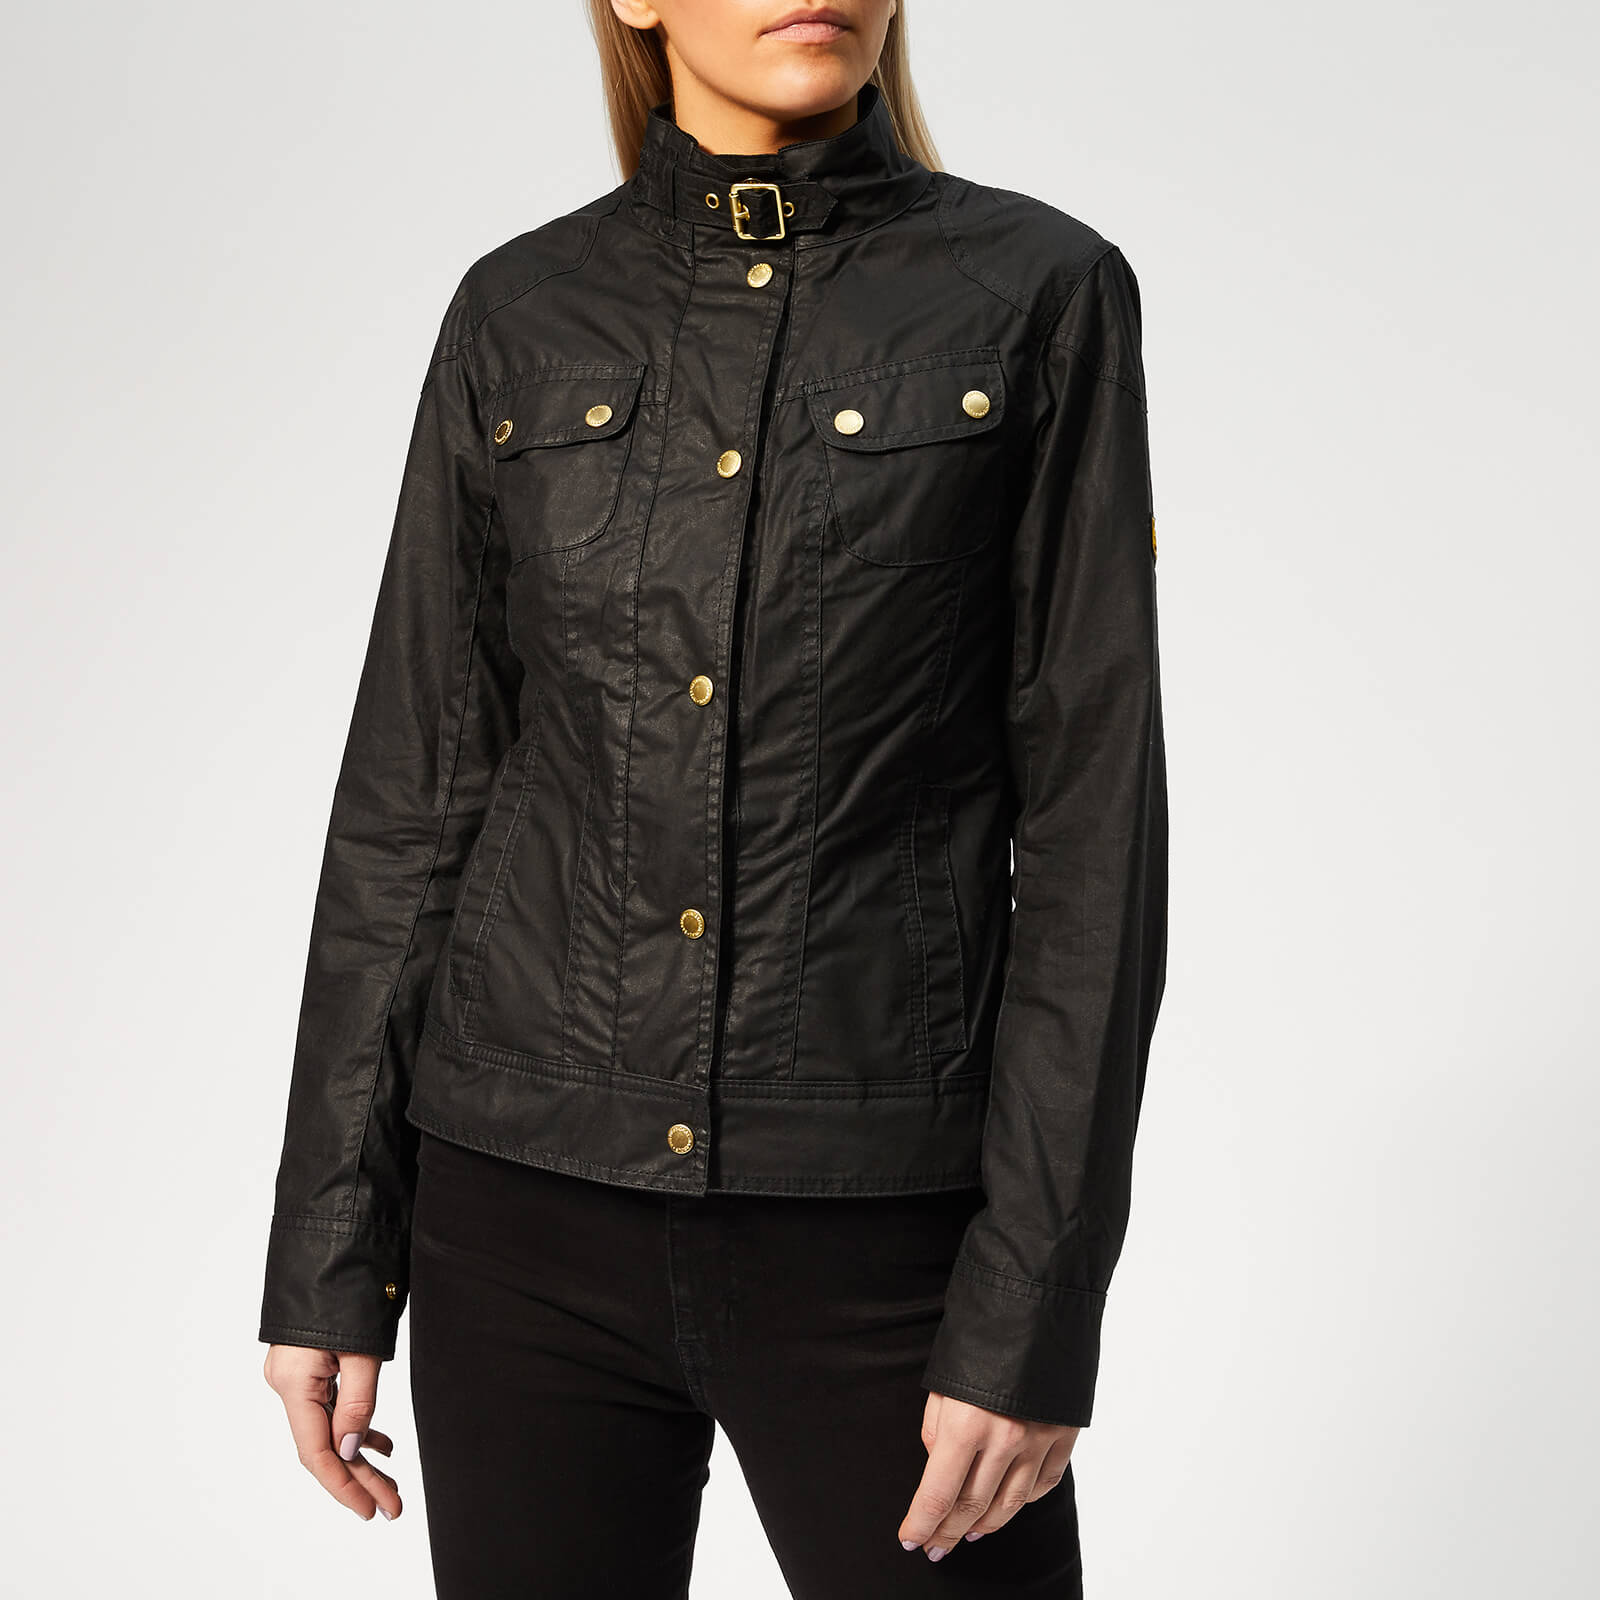 e21c0d96a Barbour International Women's Pitch Wax Jacket - Black